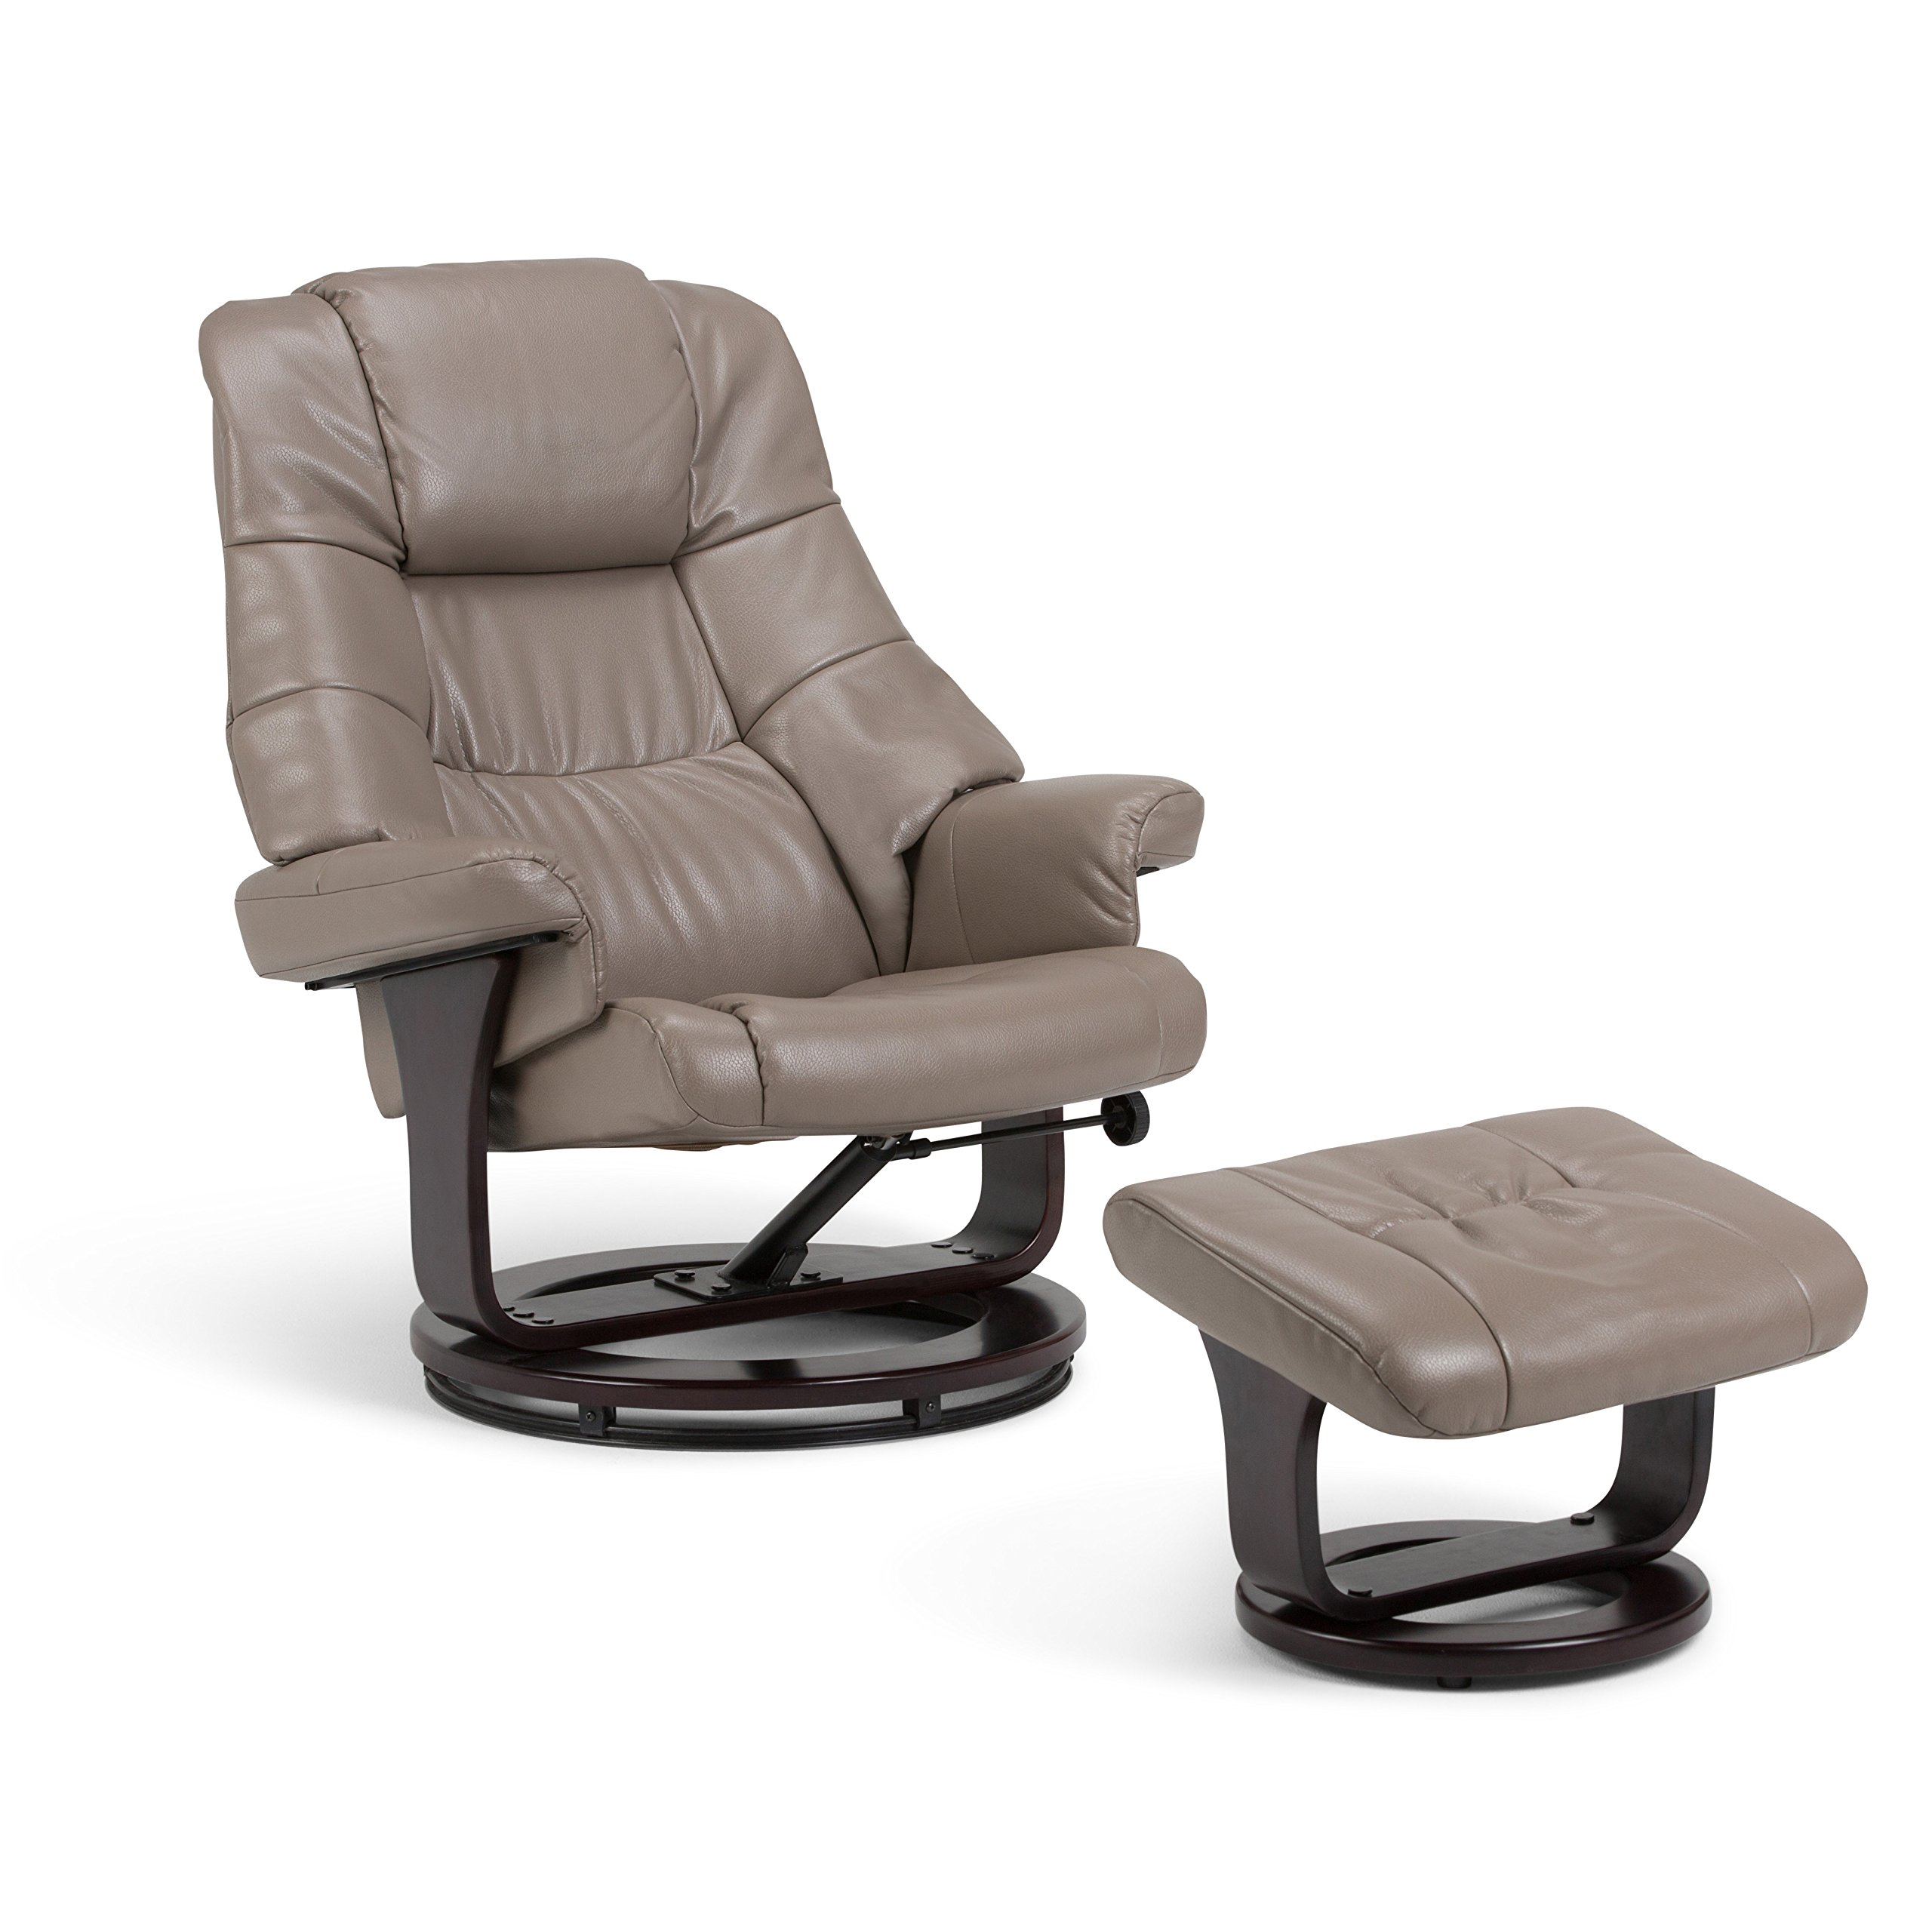 Simpli Home AXCEUREC-01 Ledi 32  inch wide Contemporary Euro Recliner in Taupe Faux Air Leather by Simpli Home